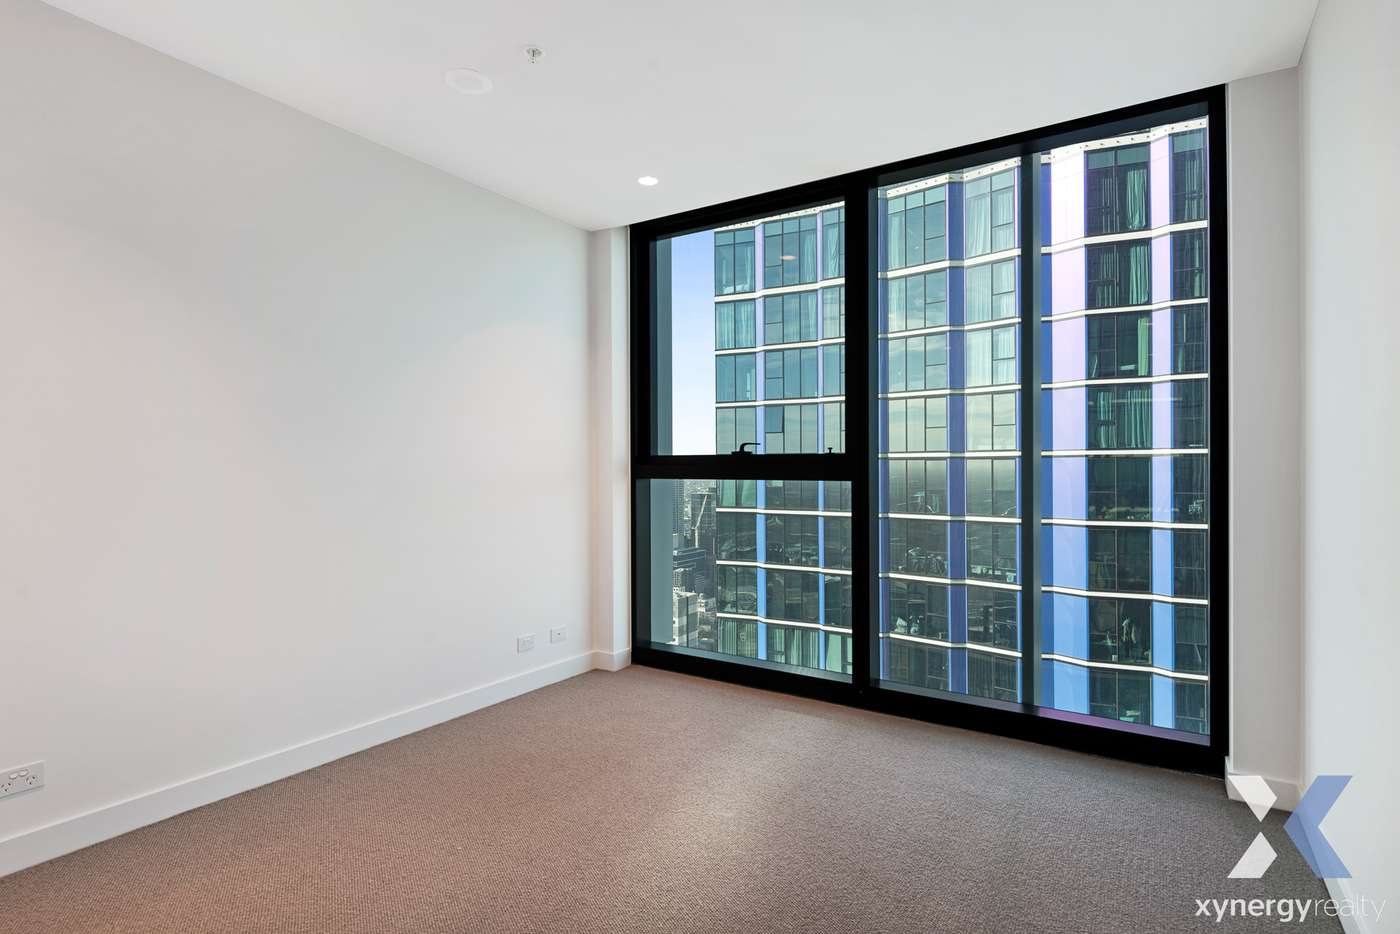 Seventh view of Homely apartment listing, 6306/462 Elizabeth Street, Melbourne VIC 3000